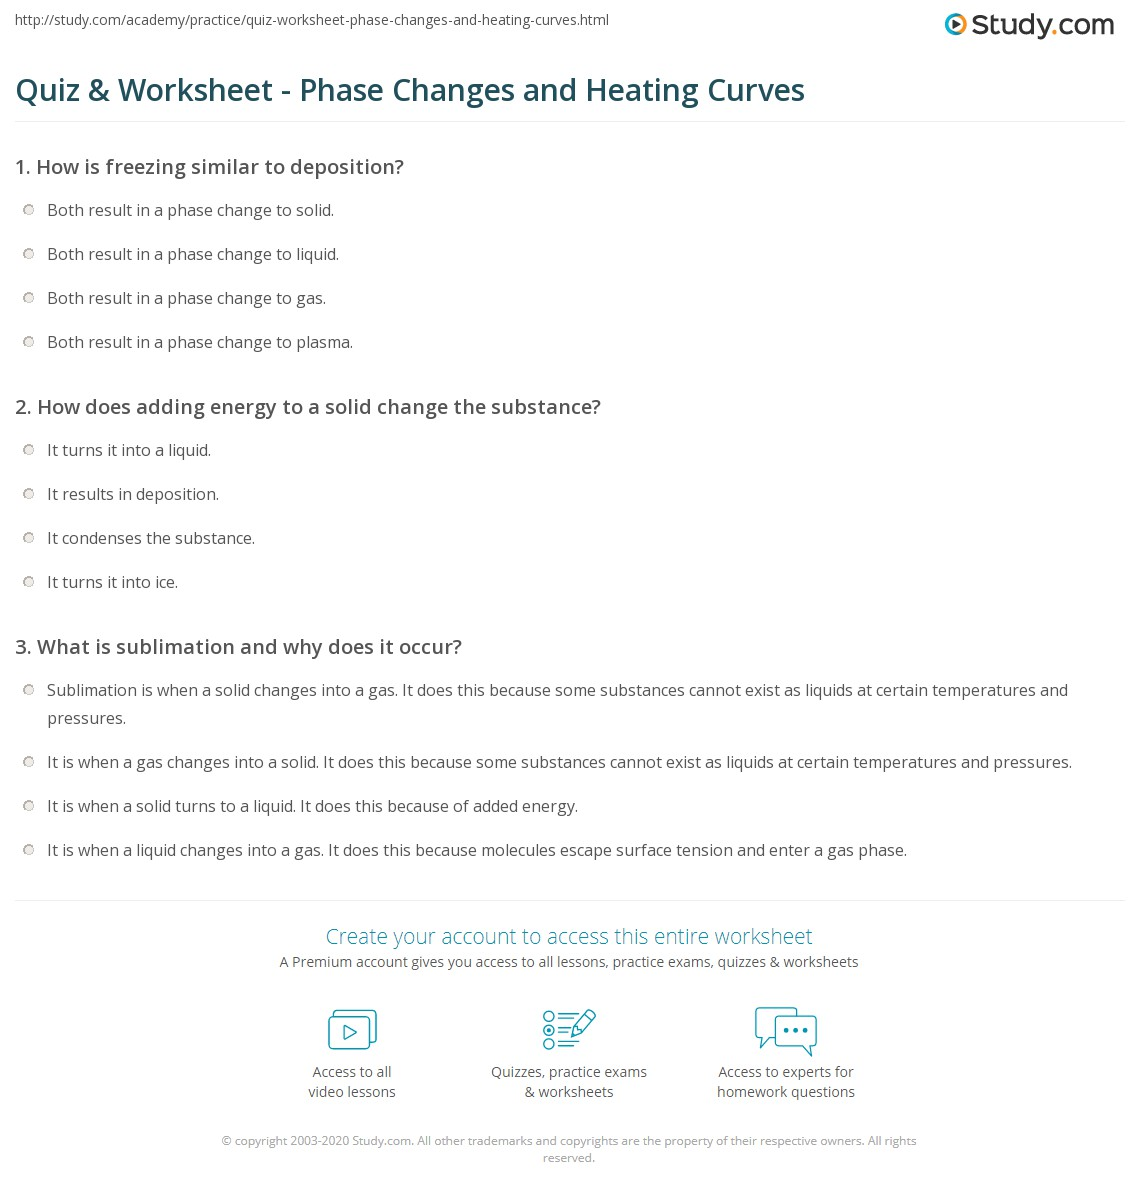 Quiz & Worksheet Phase Changes and Heating Curves